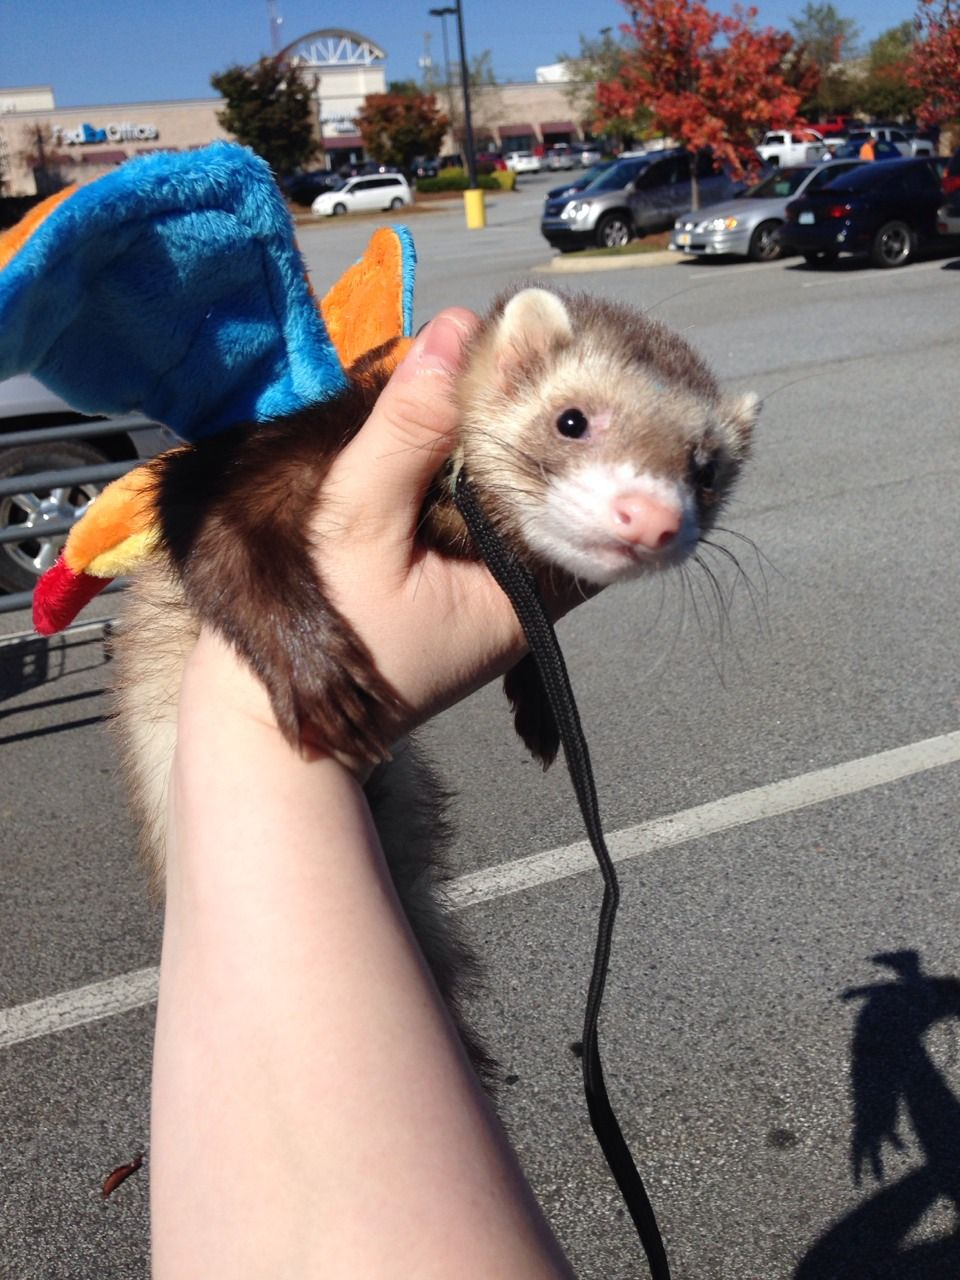 My Little Award Winning Charizard If Anyone Glacidea Cute Ferrets Funny Ferrets Pet Ferret